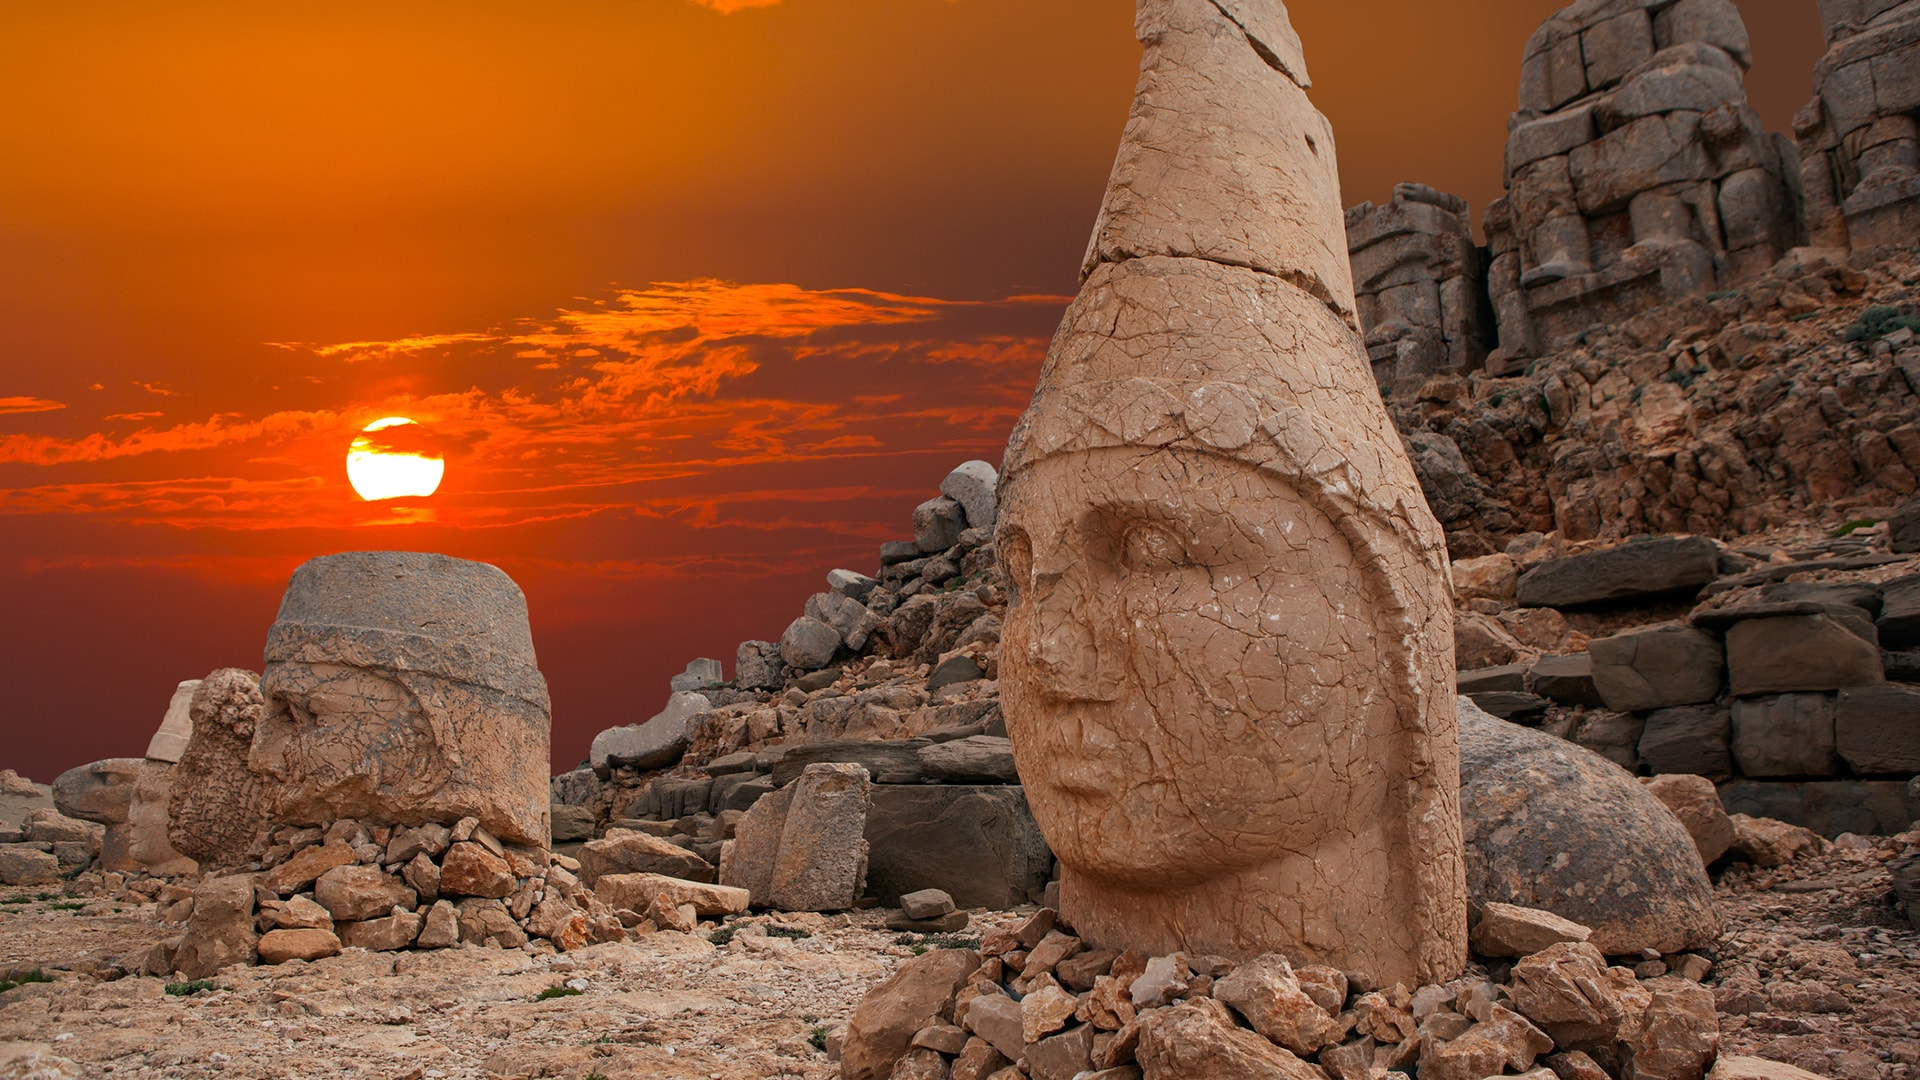 Mount Nemrut statues during sundown